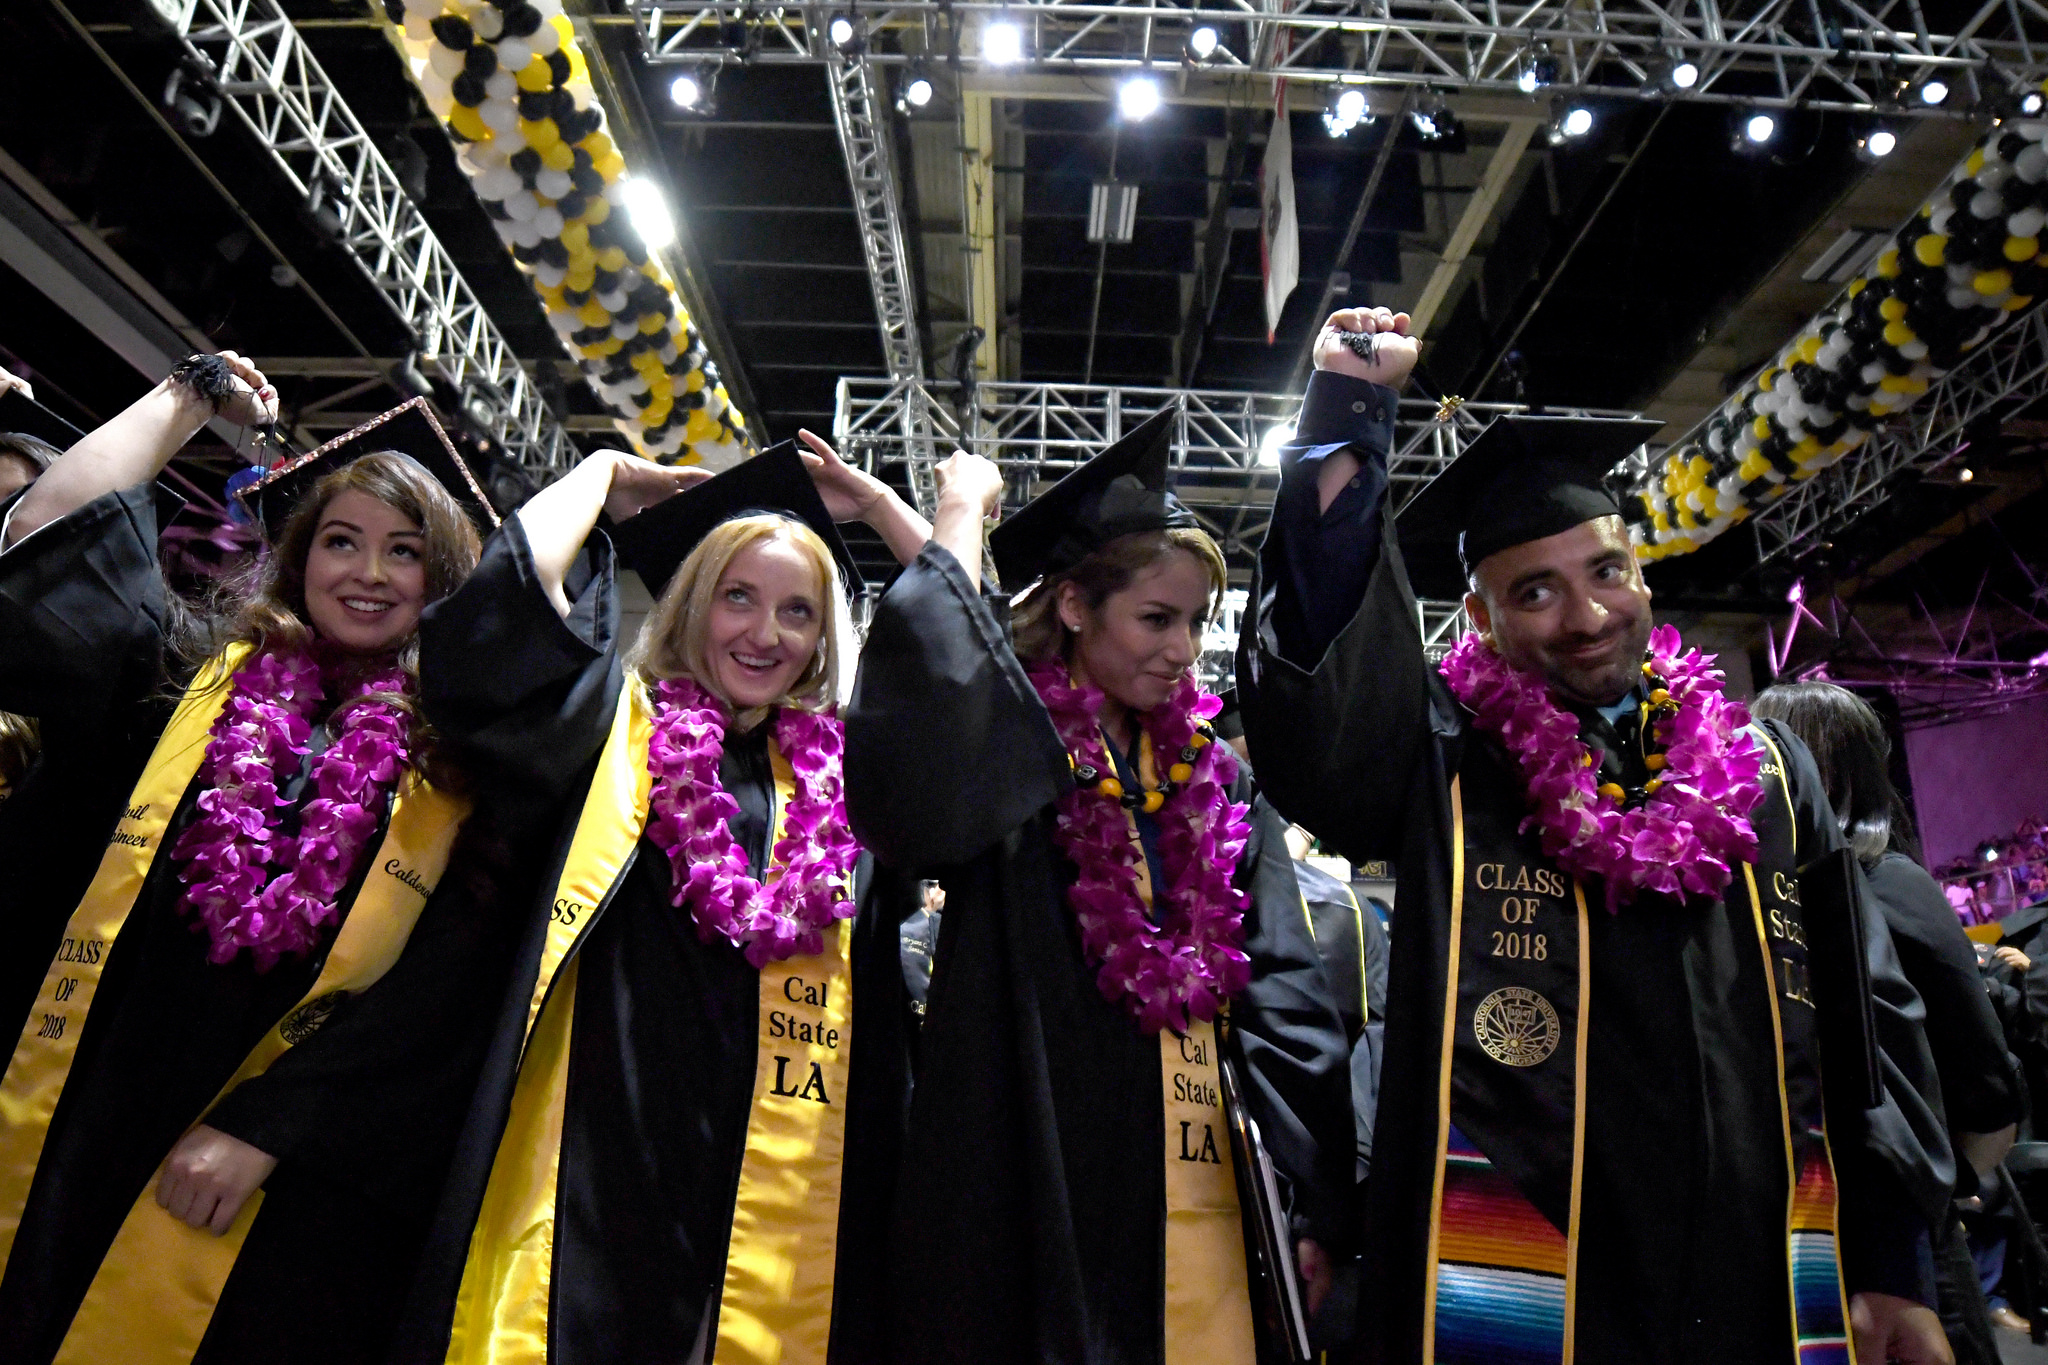 Graduates turn their tassels at Commencement